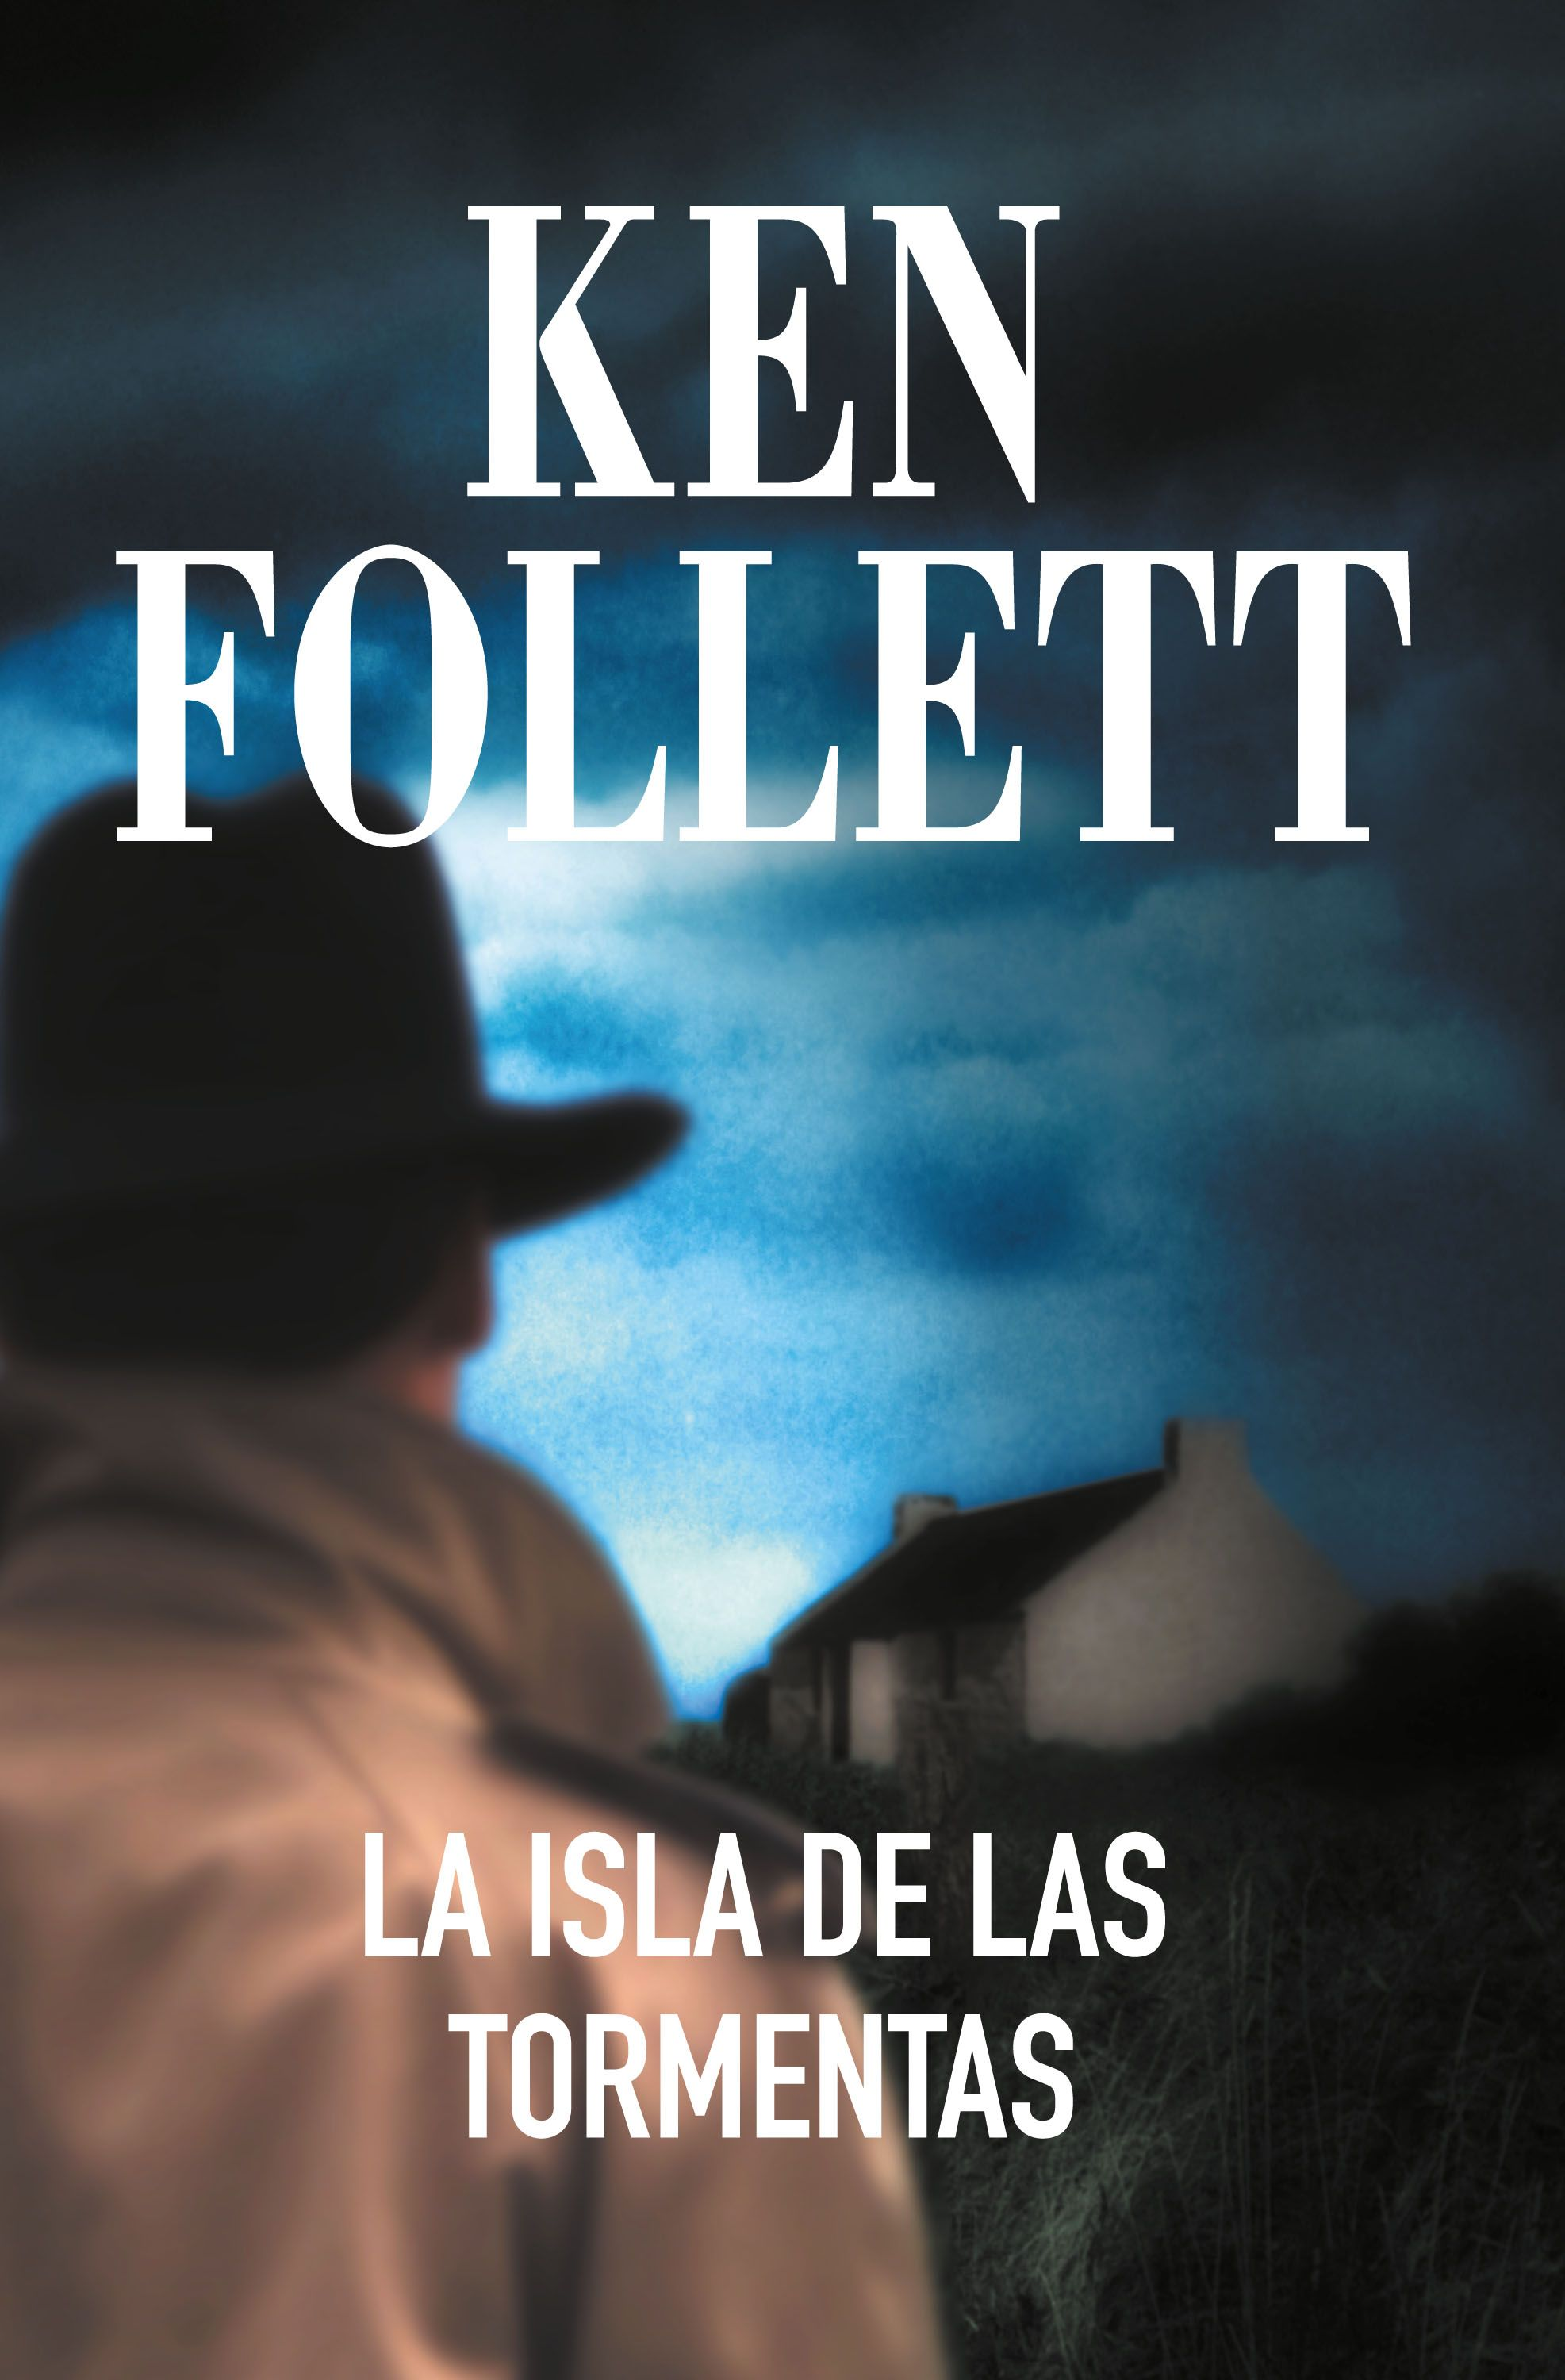 Descargar Libros Ken Follet La Isla De Las Tormentas Ebook Ken Follett 9788490329429